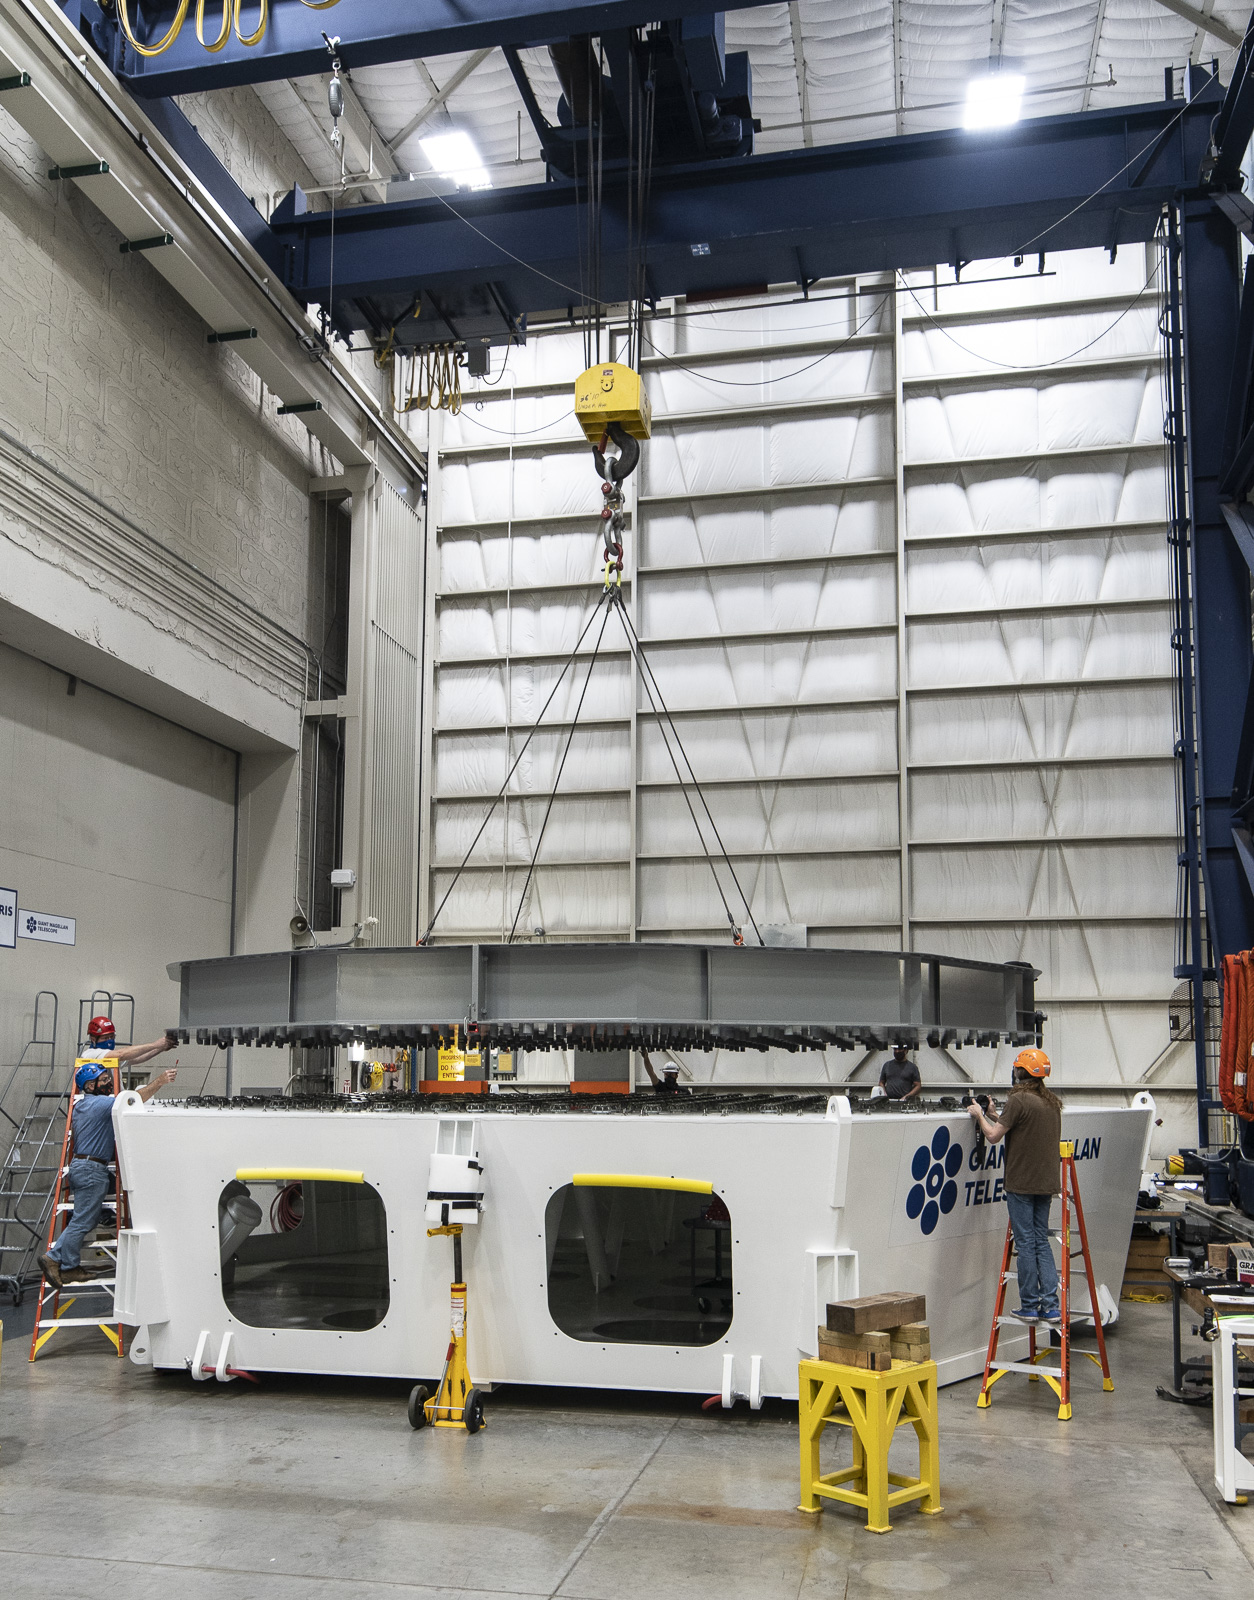 Lowering the simulator onto the test cell, June 2020. Image credit: Steven West | Richard F. Caris Mirror Lab at the University of Arizona